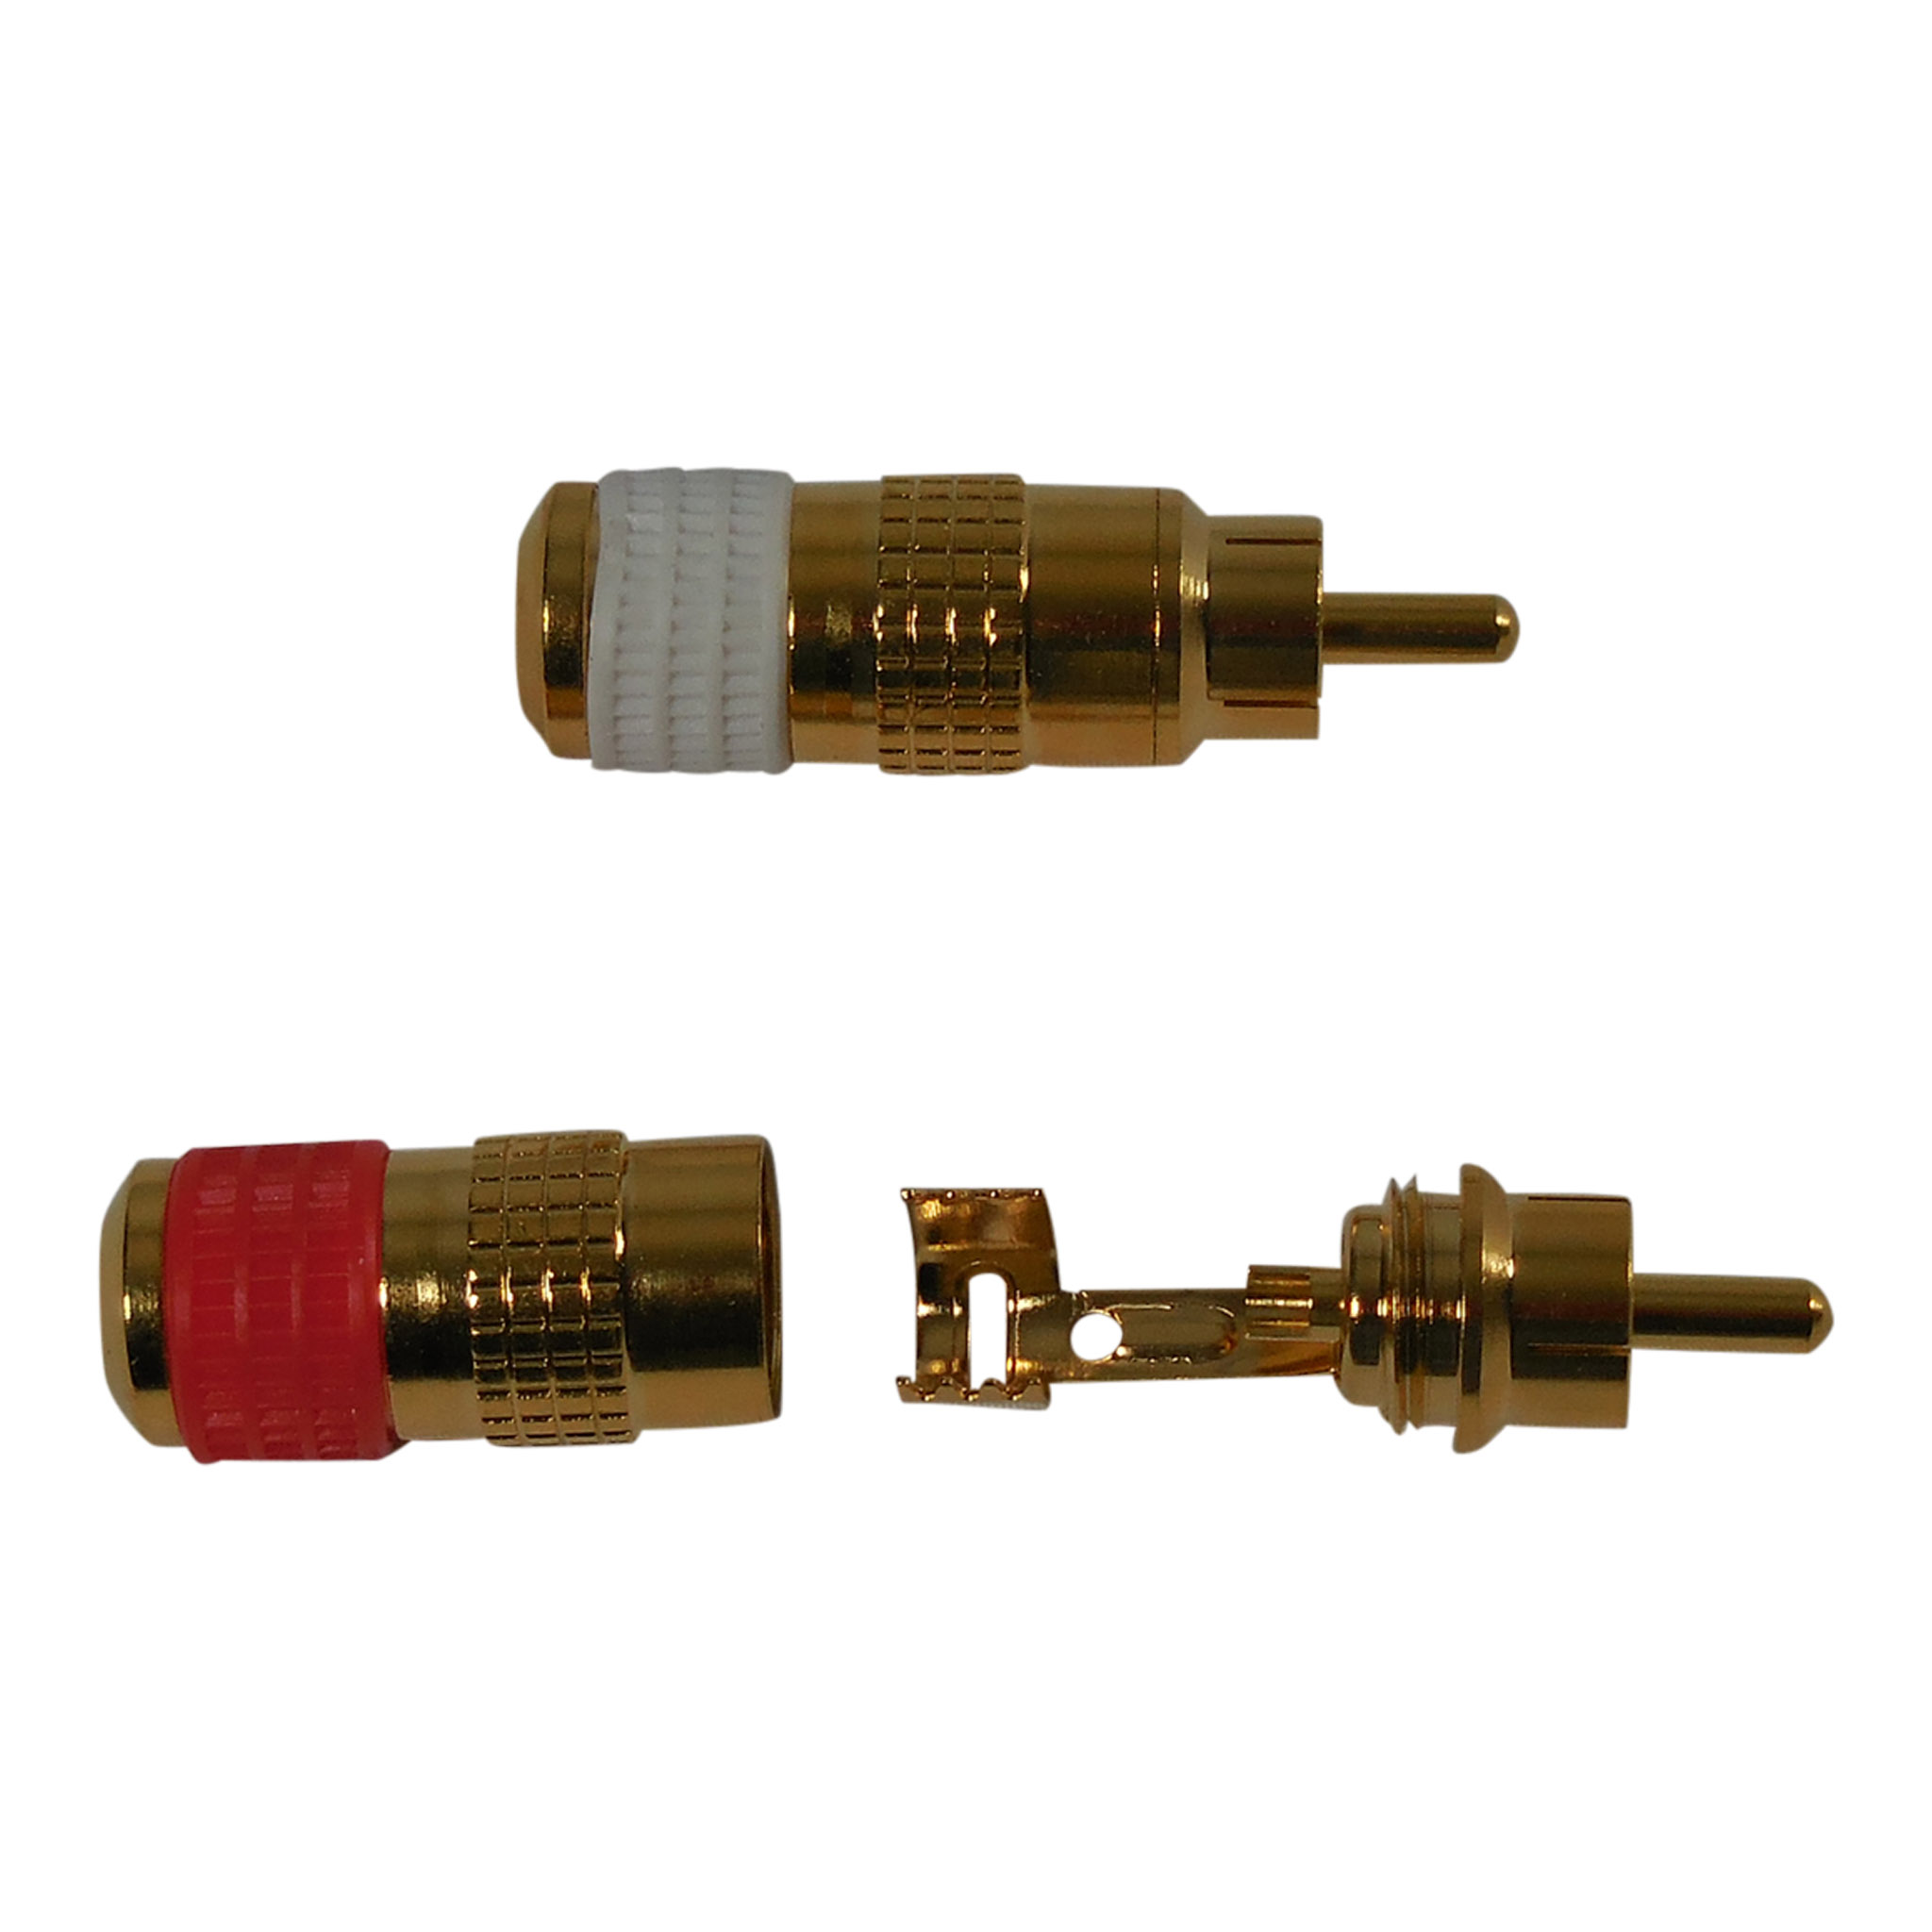 Replacement RCA Plugs Rare 3mm Size for Thorens Cable - Vinyl Nirvana -  Vintage AR and Thorens Turntable Sales, Parts, and Restorations